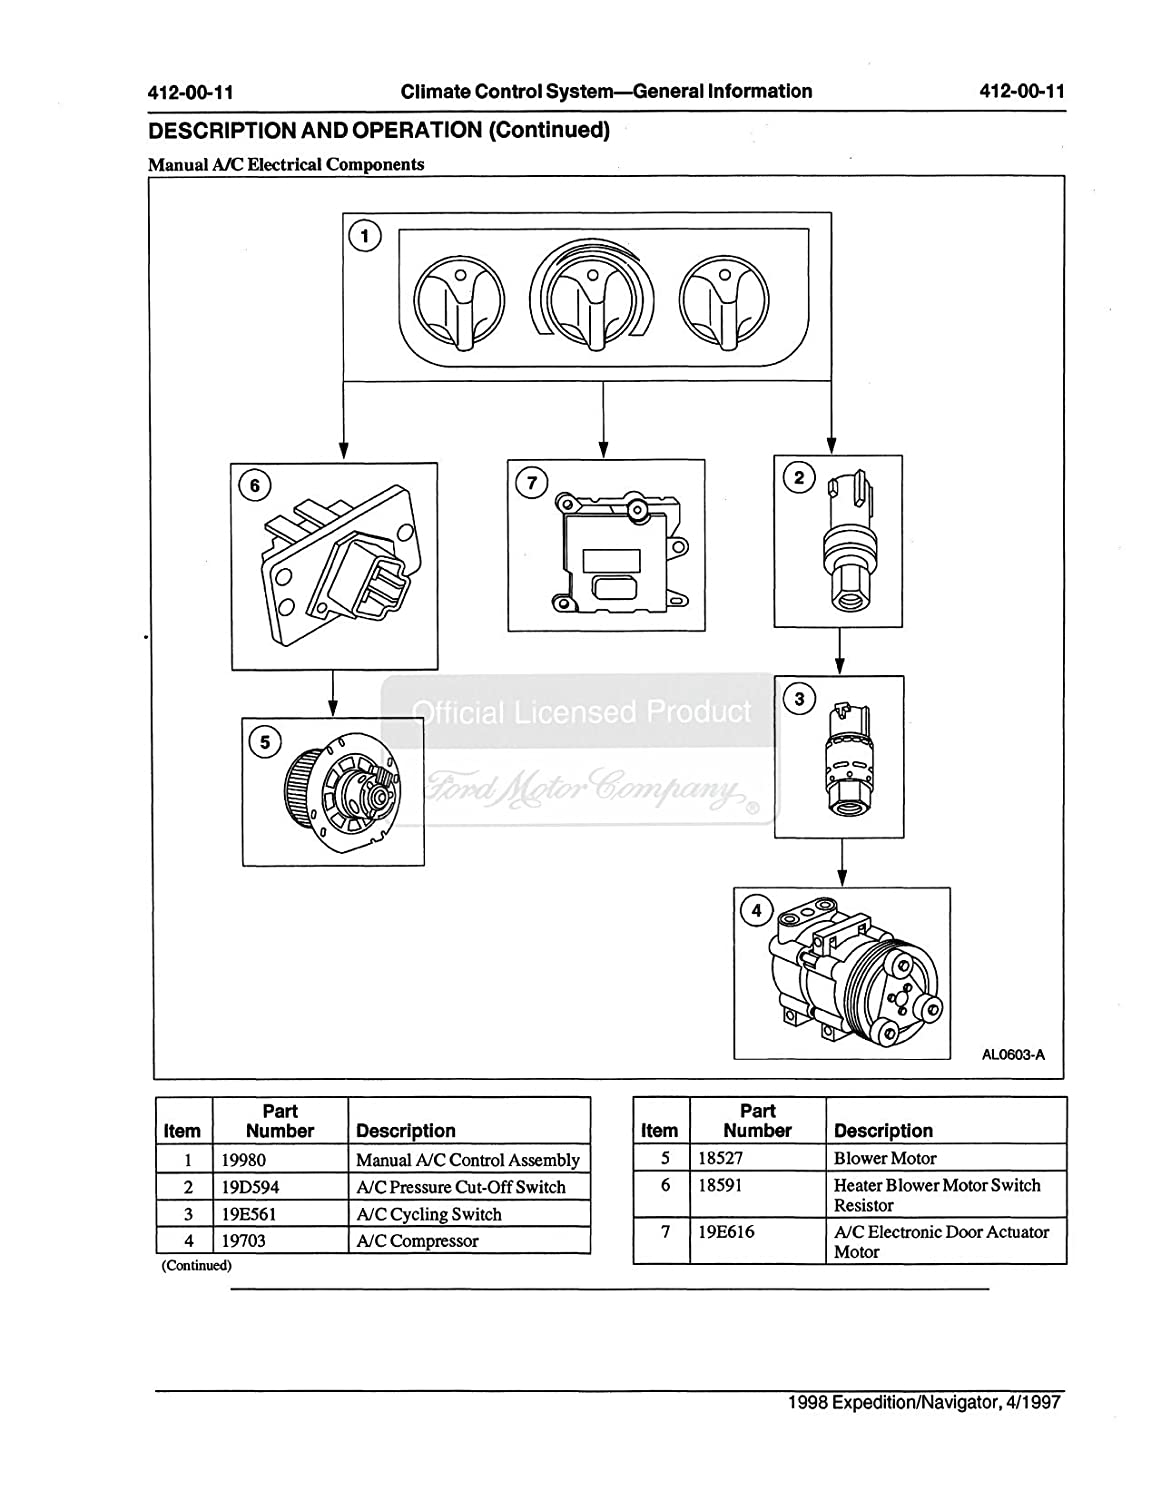 Bishko Automotive Literature 1998 Ford Navigator F150 Expedition Heater Blower Motor Control Resistor Shop Service Repair Manual Book Engine Wiring Oem